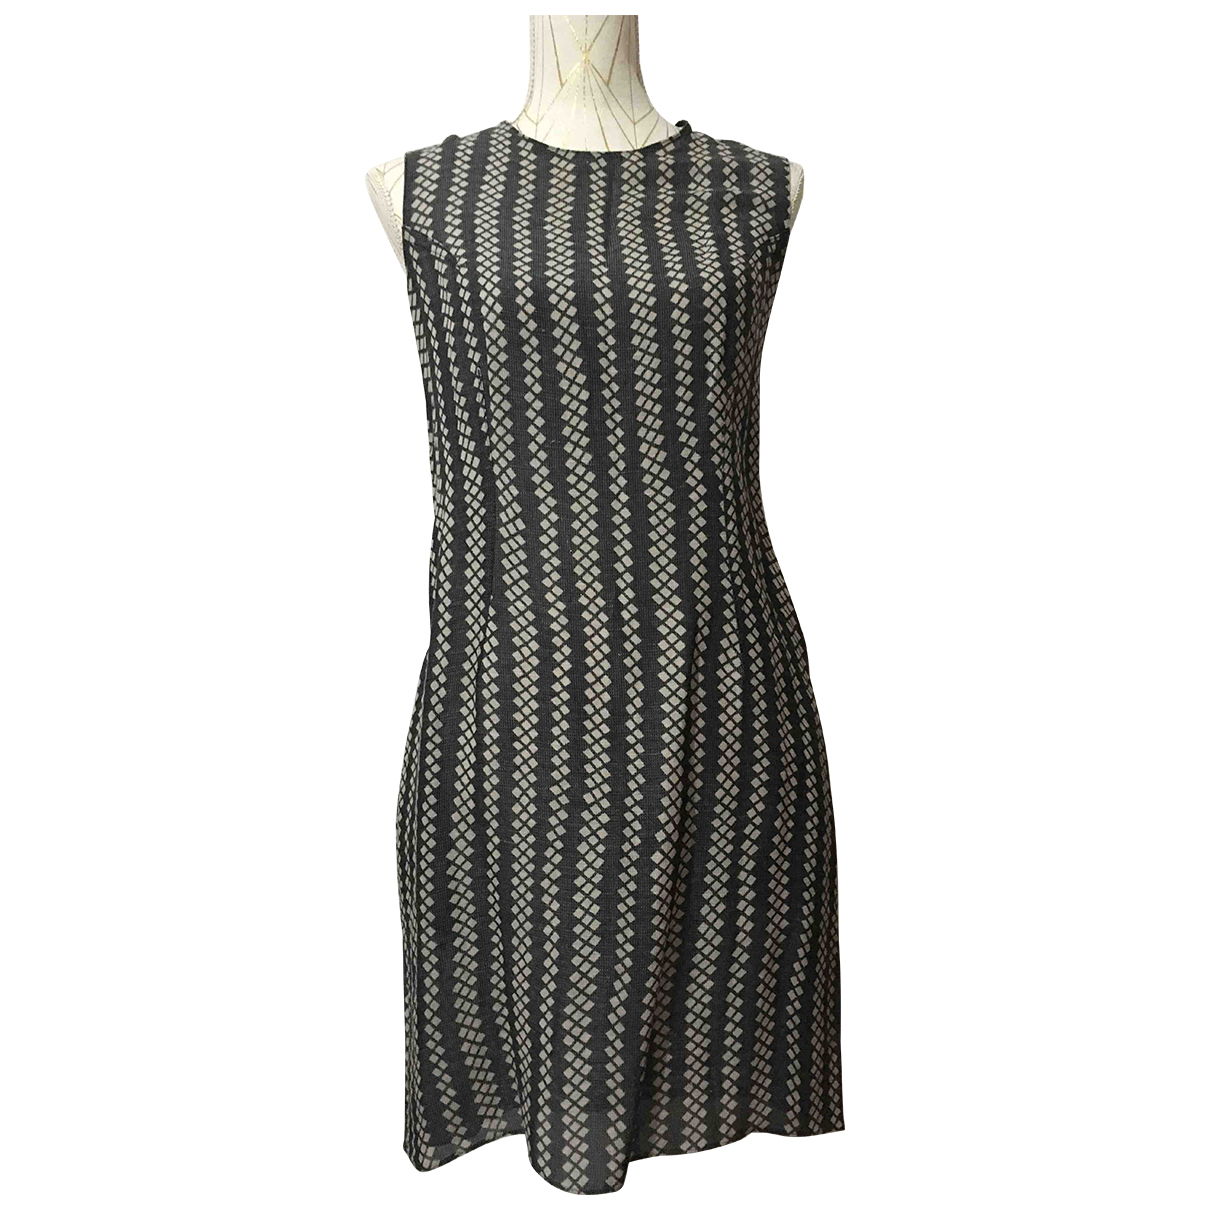 Marni N Grey Silk dress for Women 38 IT